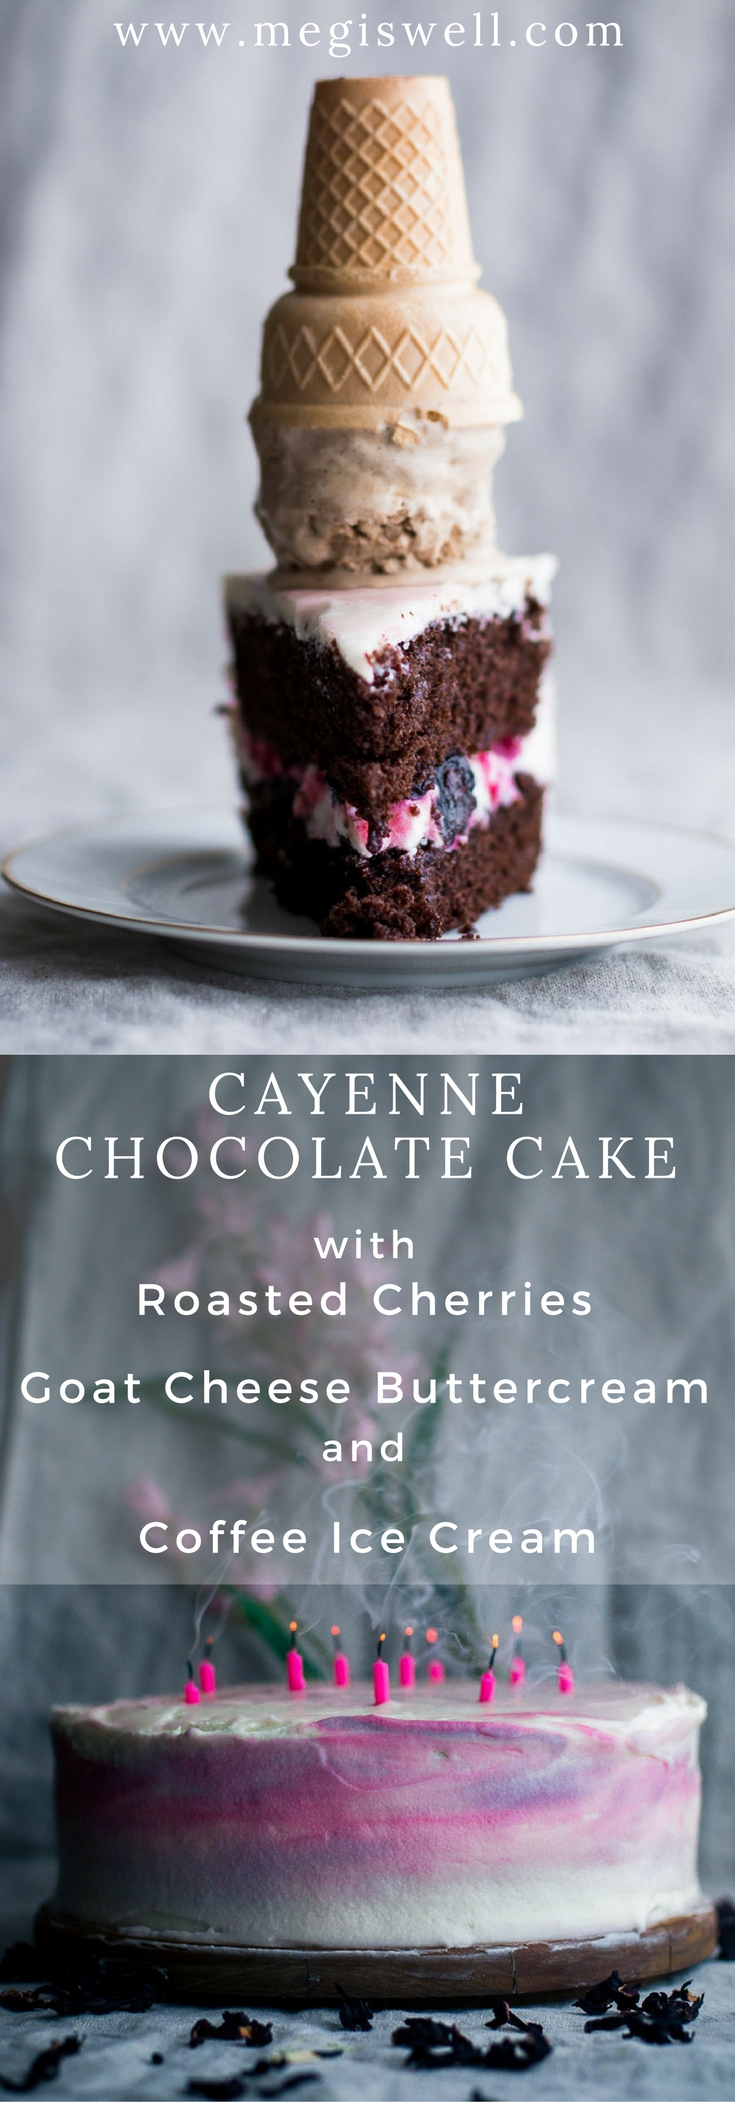 This Cayenne Chocolate Cake is an extravagant combination of moist homemade cake spiked with cayenne pepper and cinnamon and layered with roasted cherries and goat cheese buttercream. It's topped with an easy no churn Coffee Ice Cream, melding the flavors together in a trio of awesomeness inspired by Jeni's Splendid Ice Cream. | www.megiswell.com